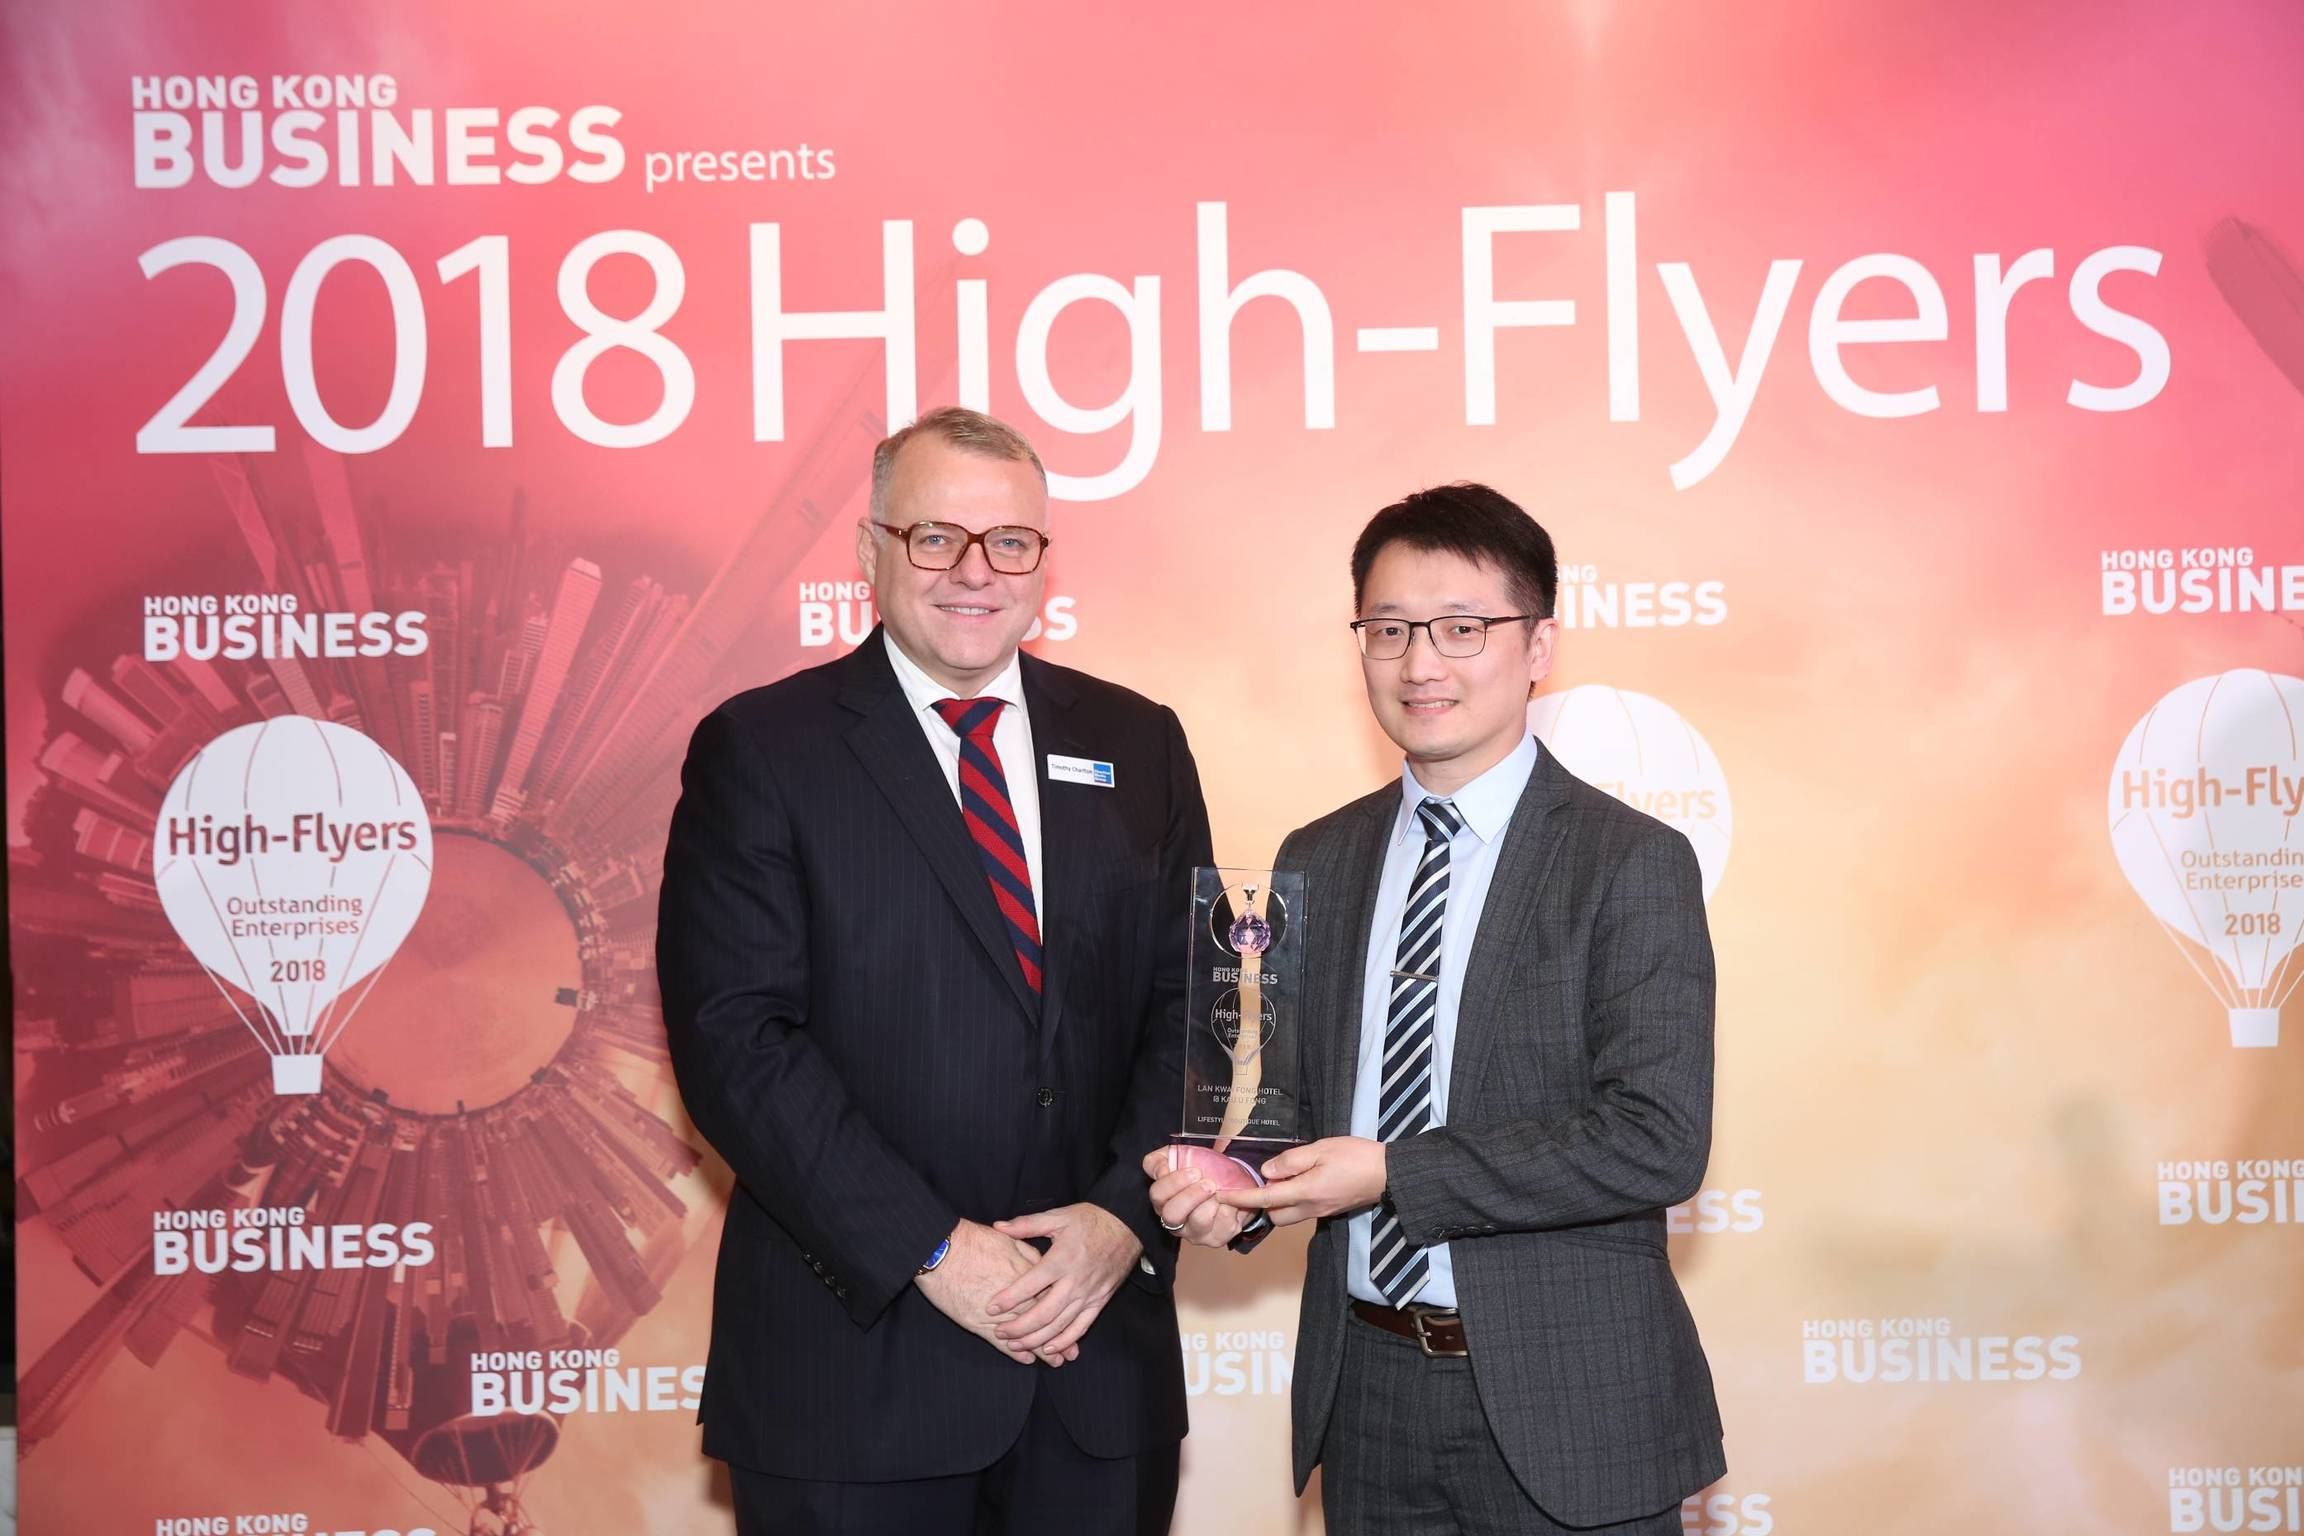 Lan Kwai Fong Hotel @ Kau U Fong has been awarded the Hong Kong Business High Flyers Award 2018